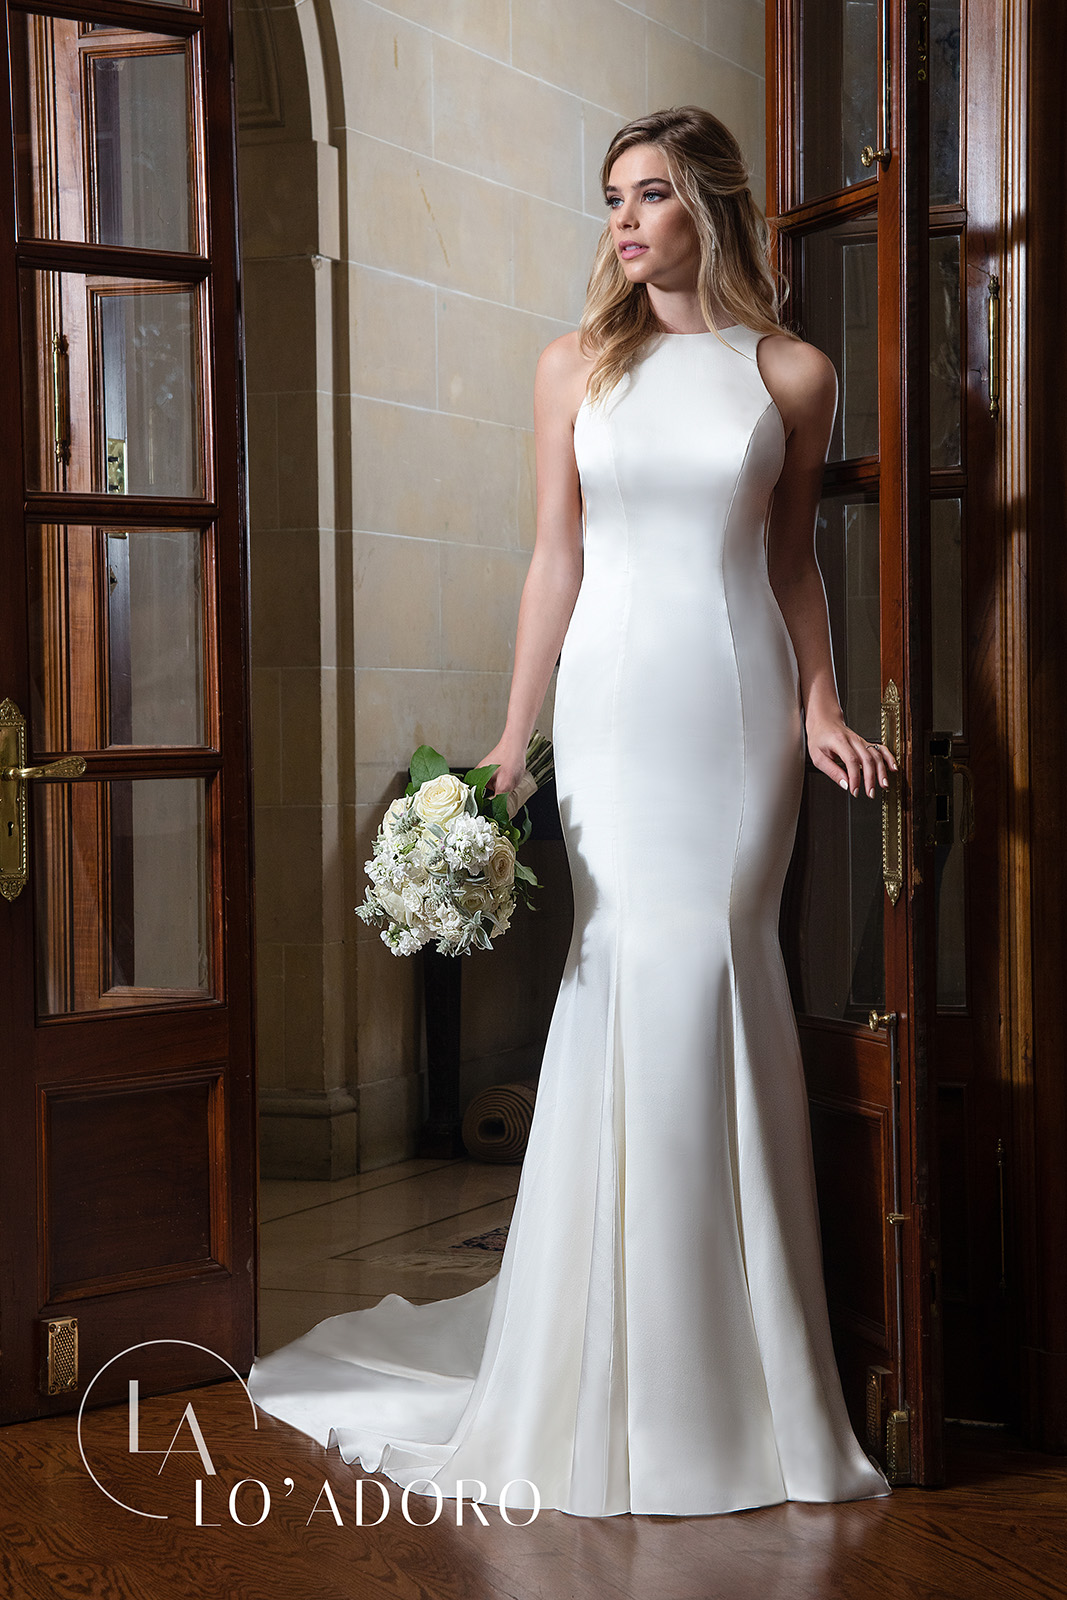 High Neckline Fitted Long Lo' Adoro Bridal in Ivory Color